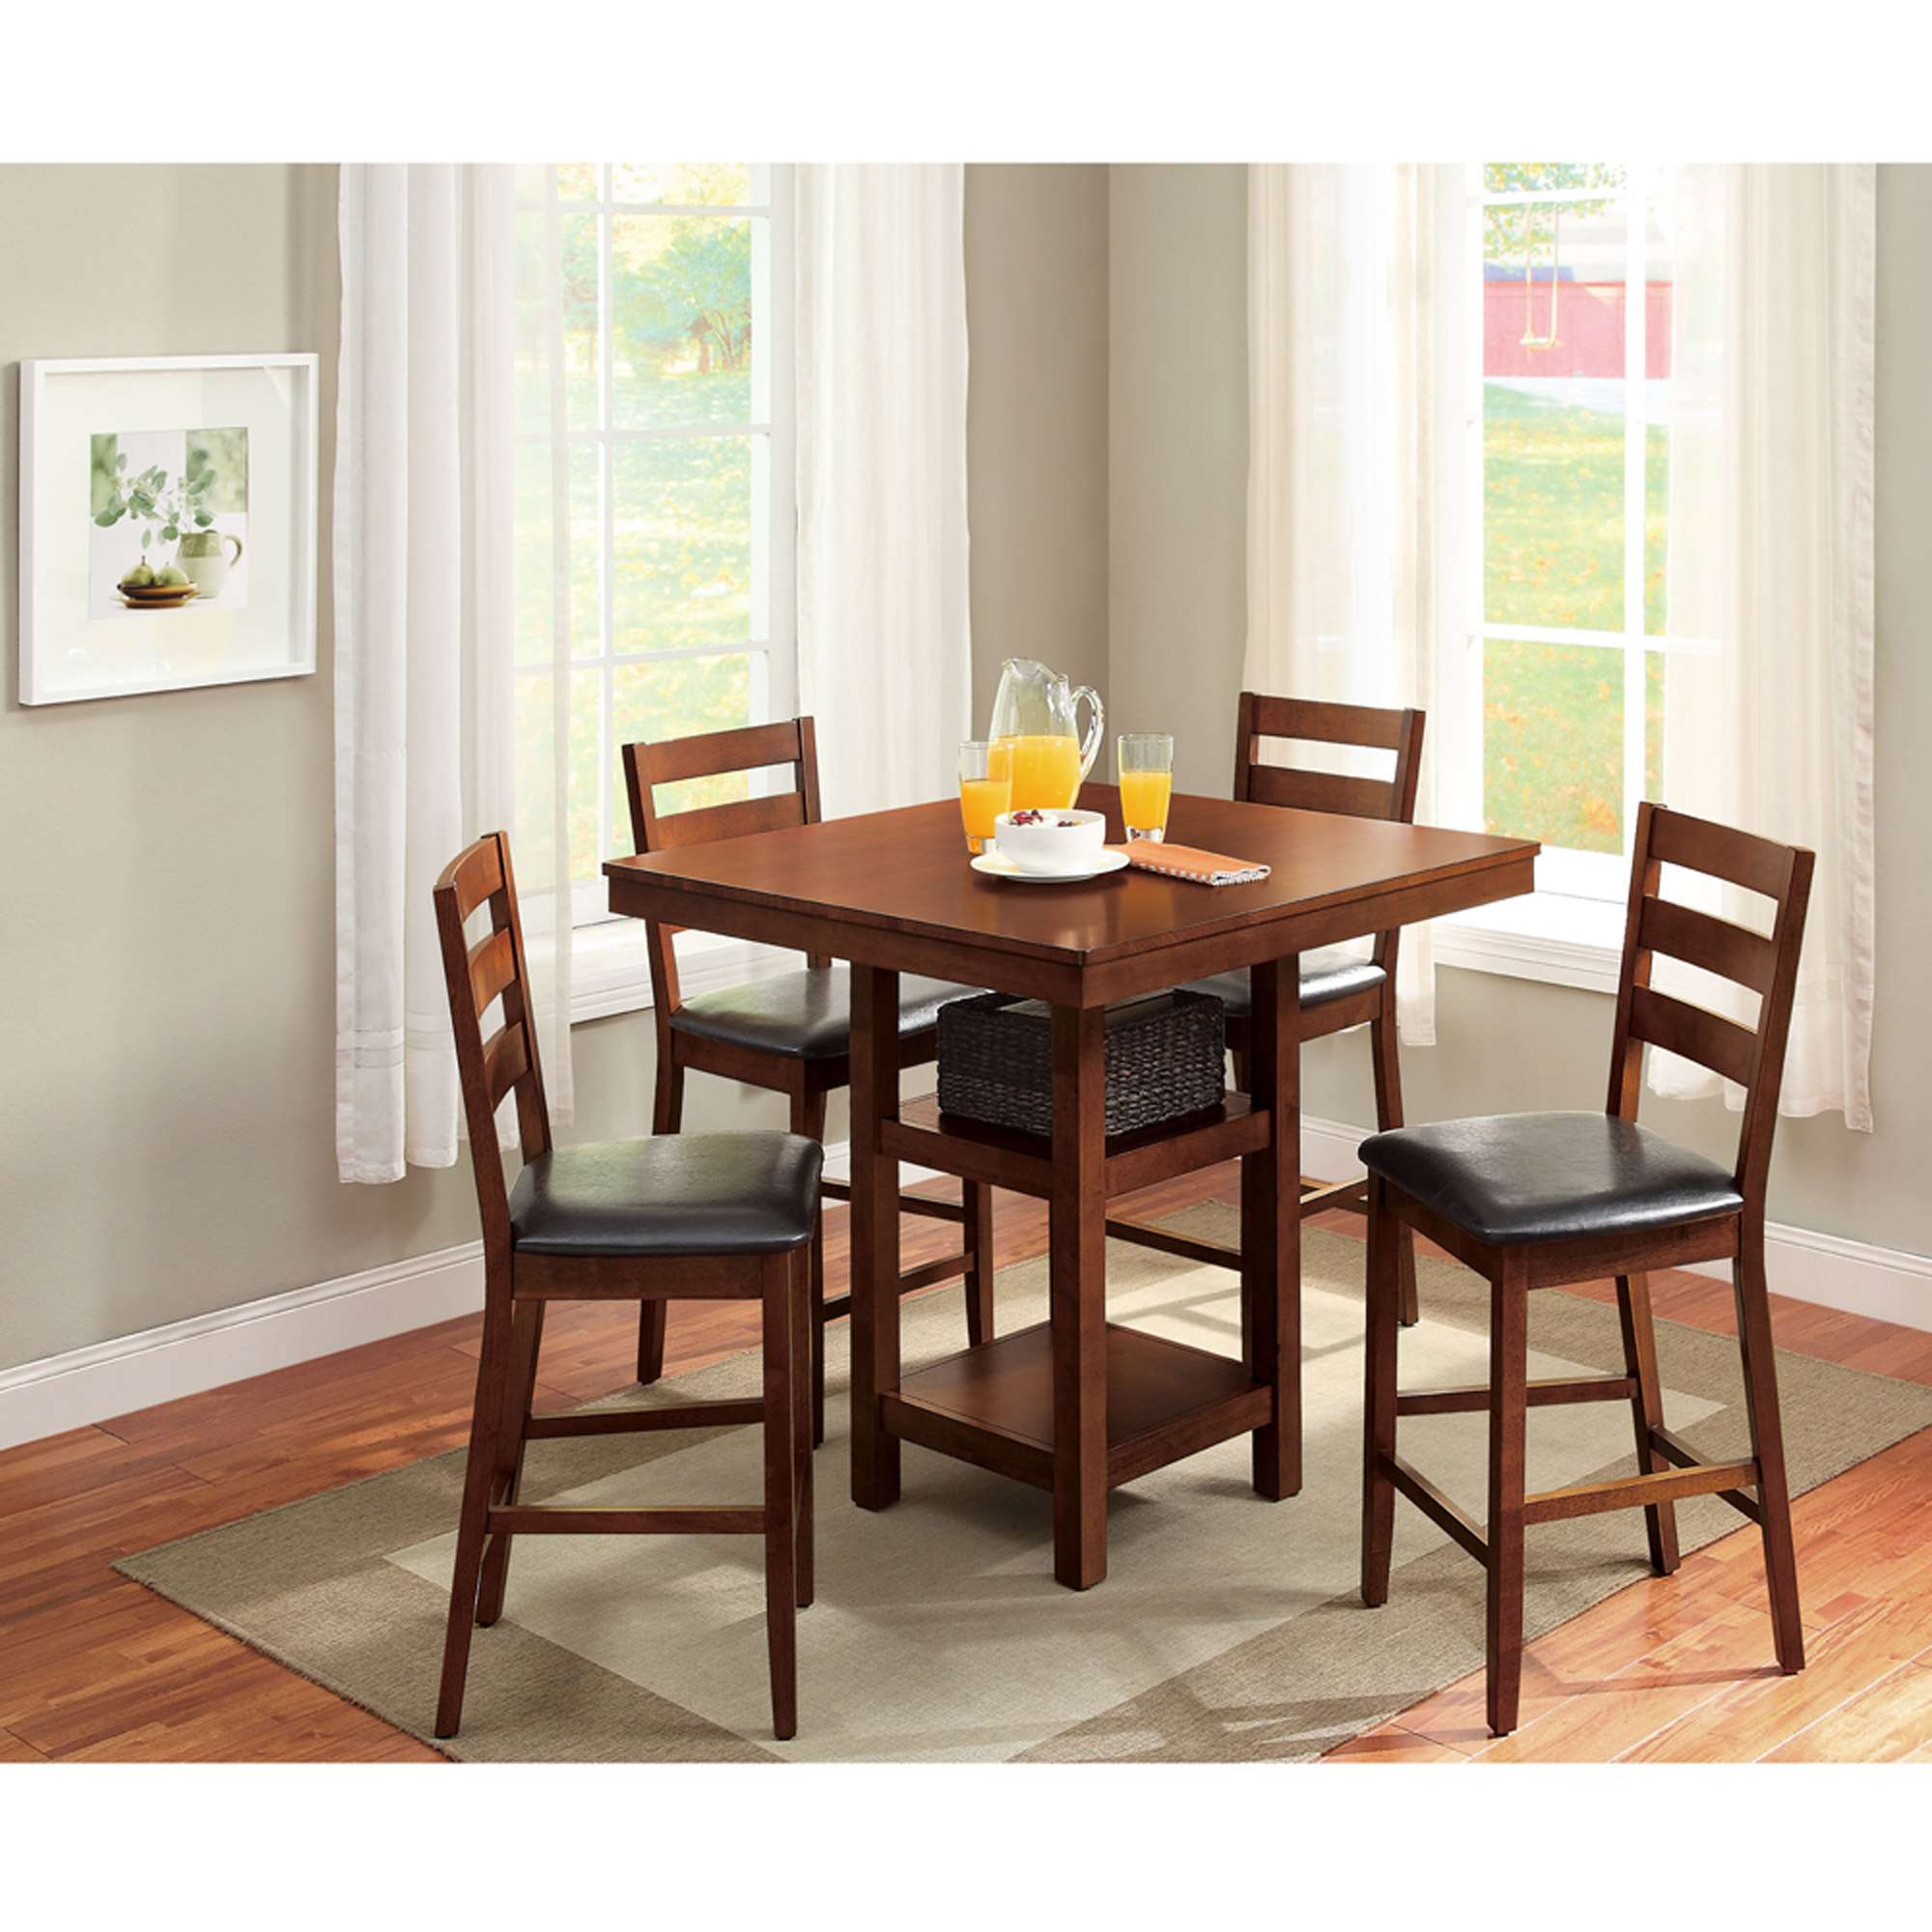 better homes and gardens dalton park 5 piece counter height dining set mocha walmartcom